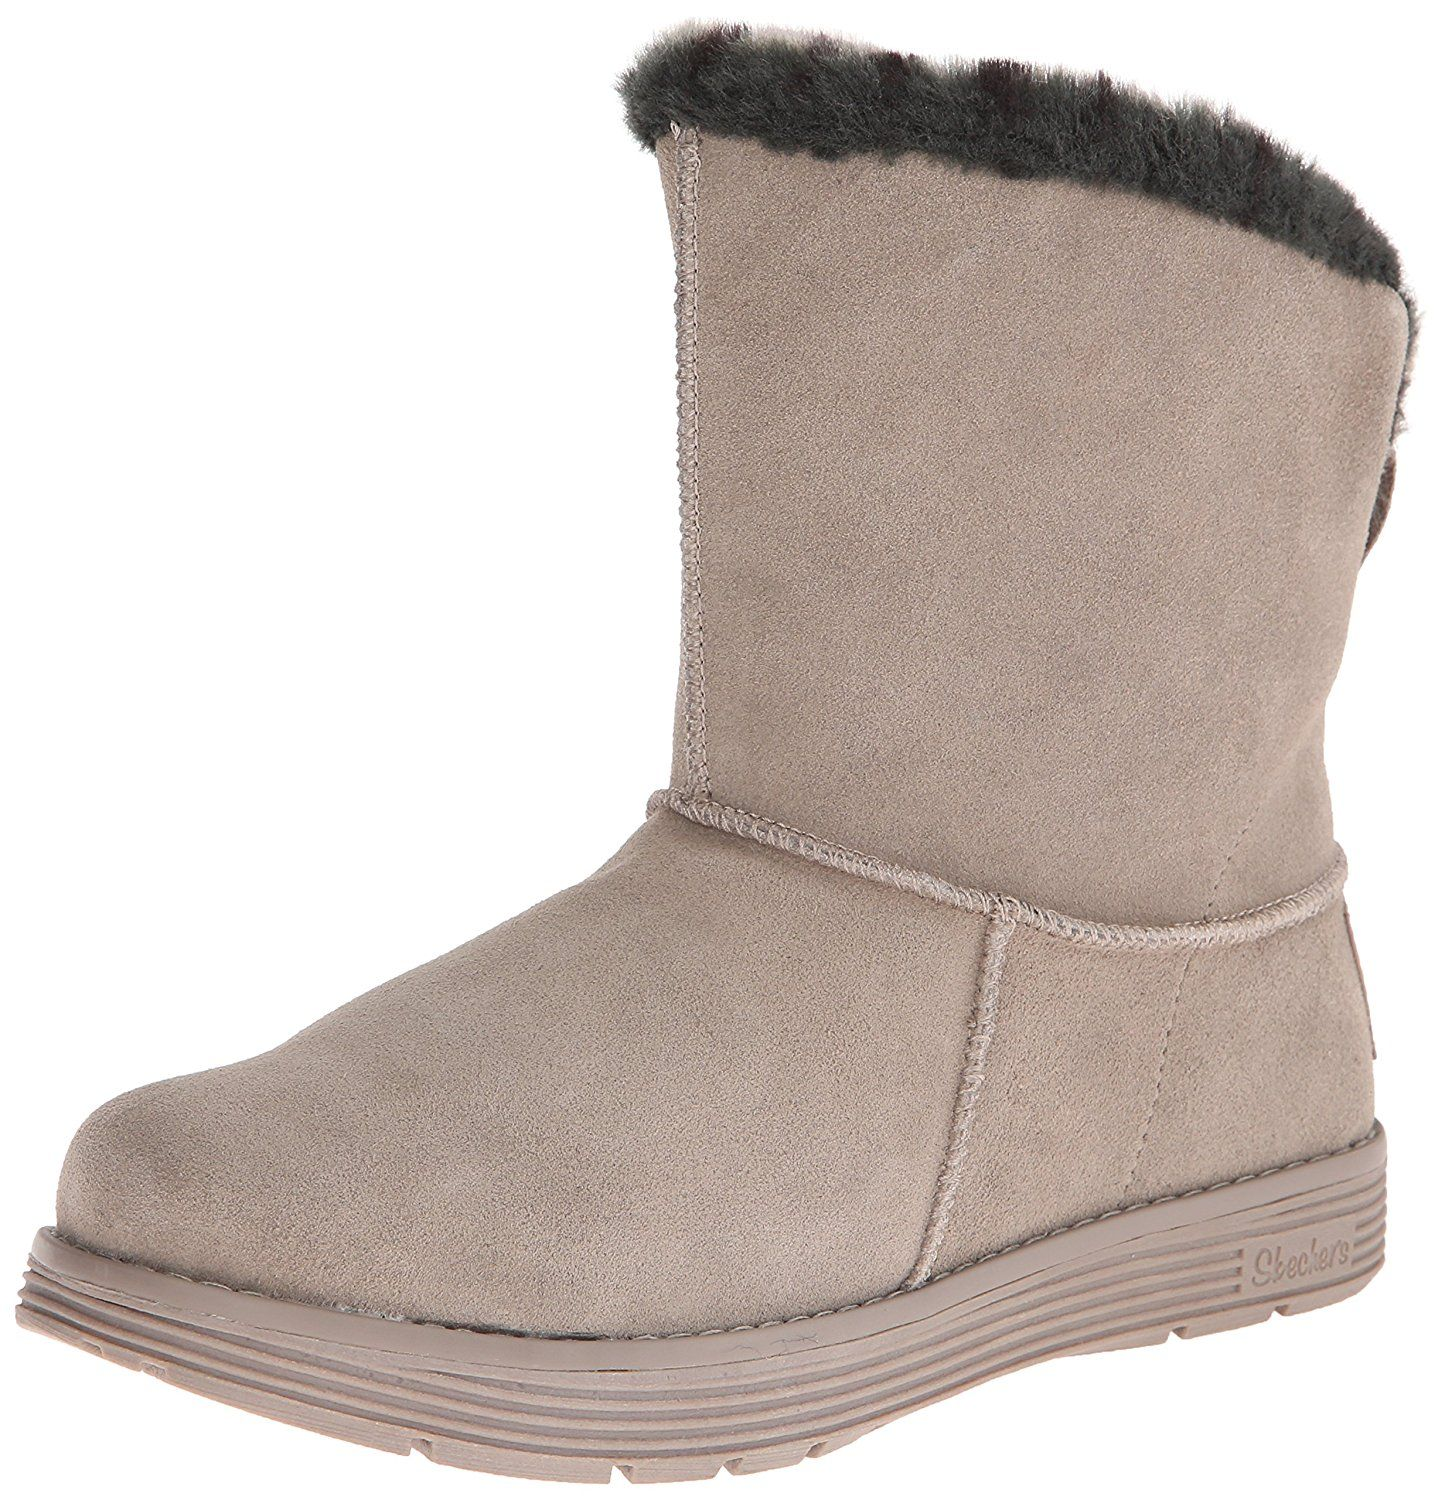 skechers j'adore boots